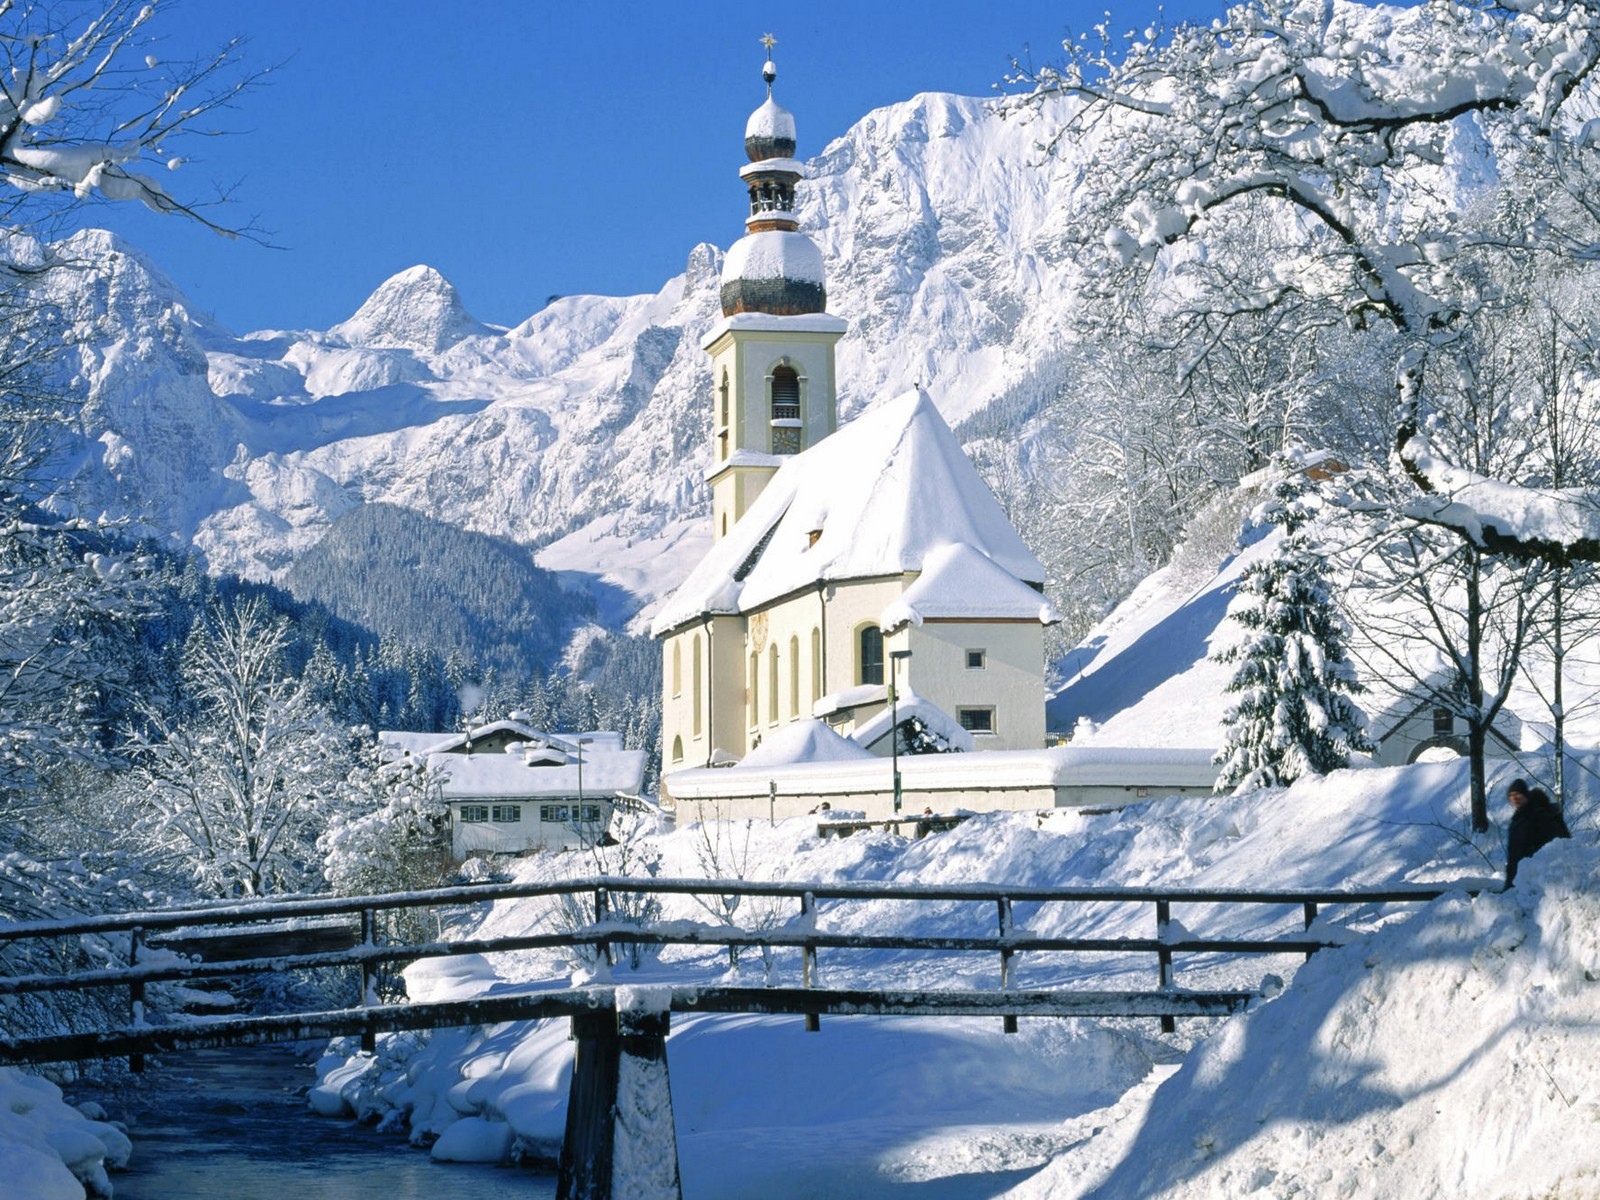 church_in_snow_1600x1200.jpg